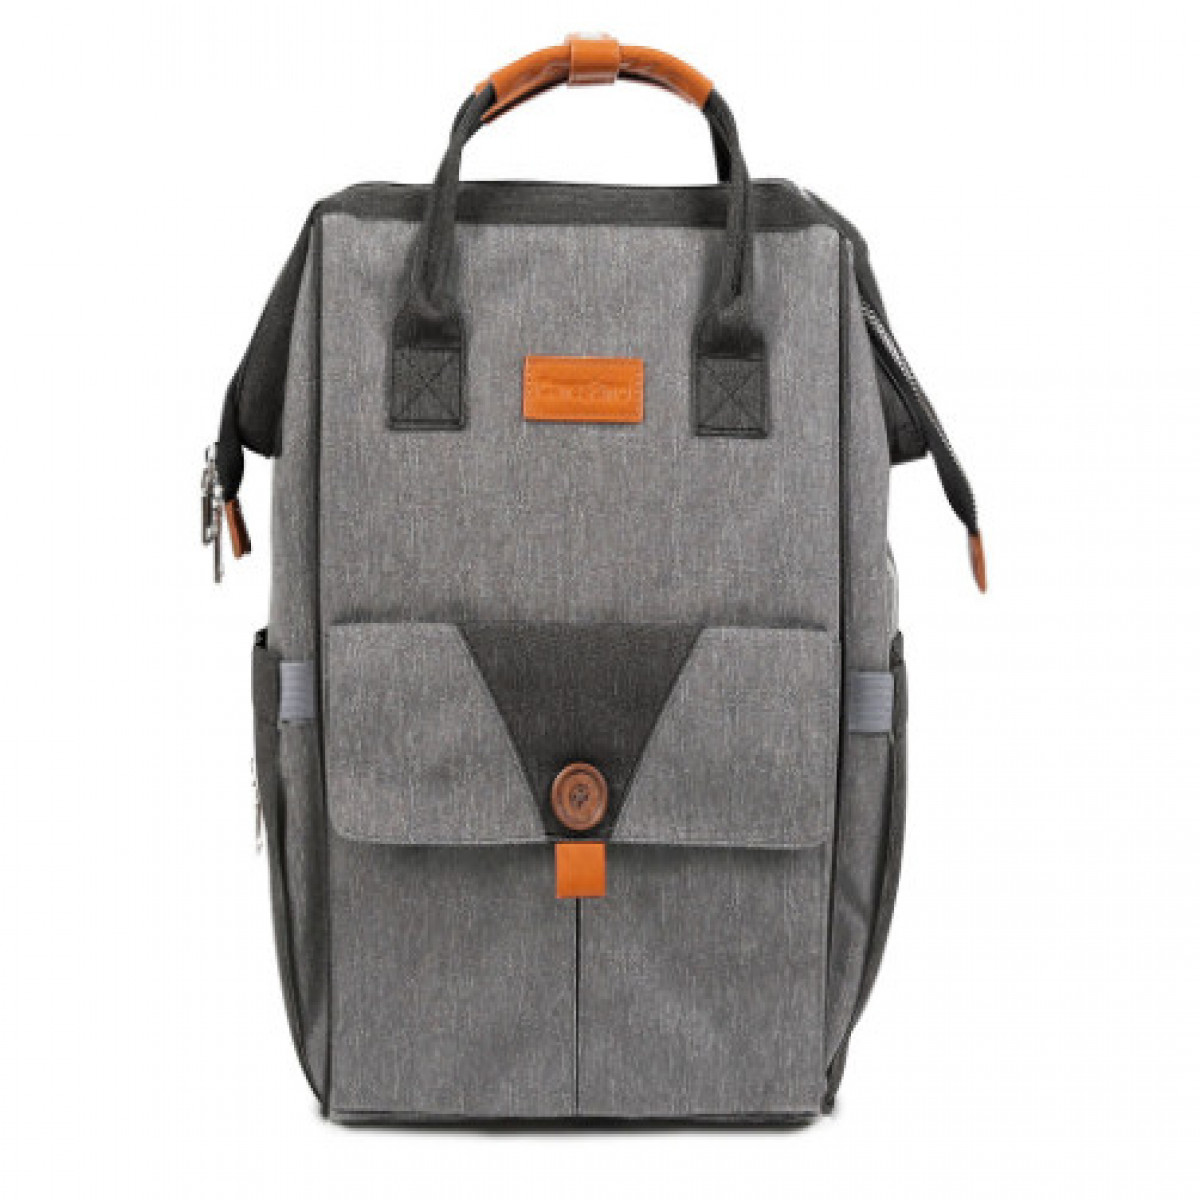 Mochila Maternal Milán Carestino gris